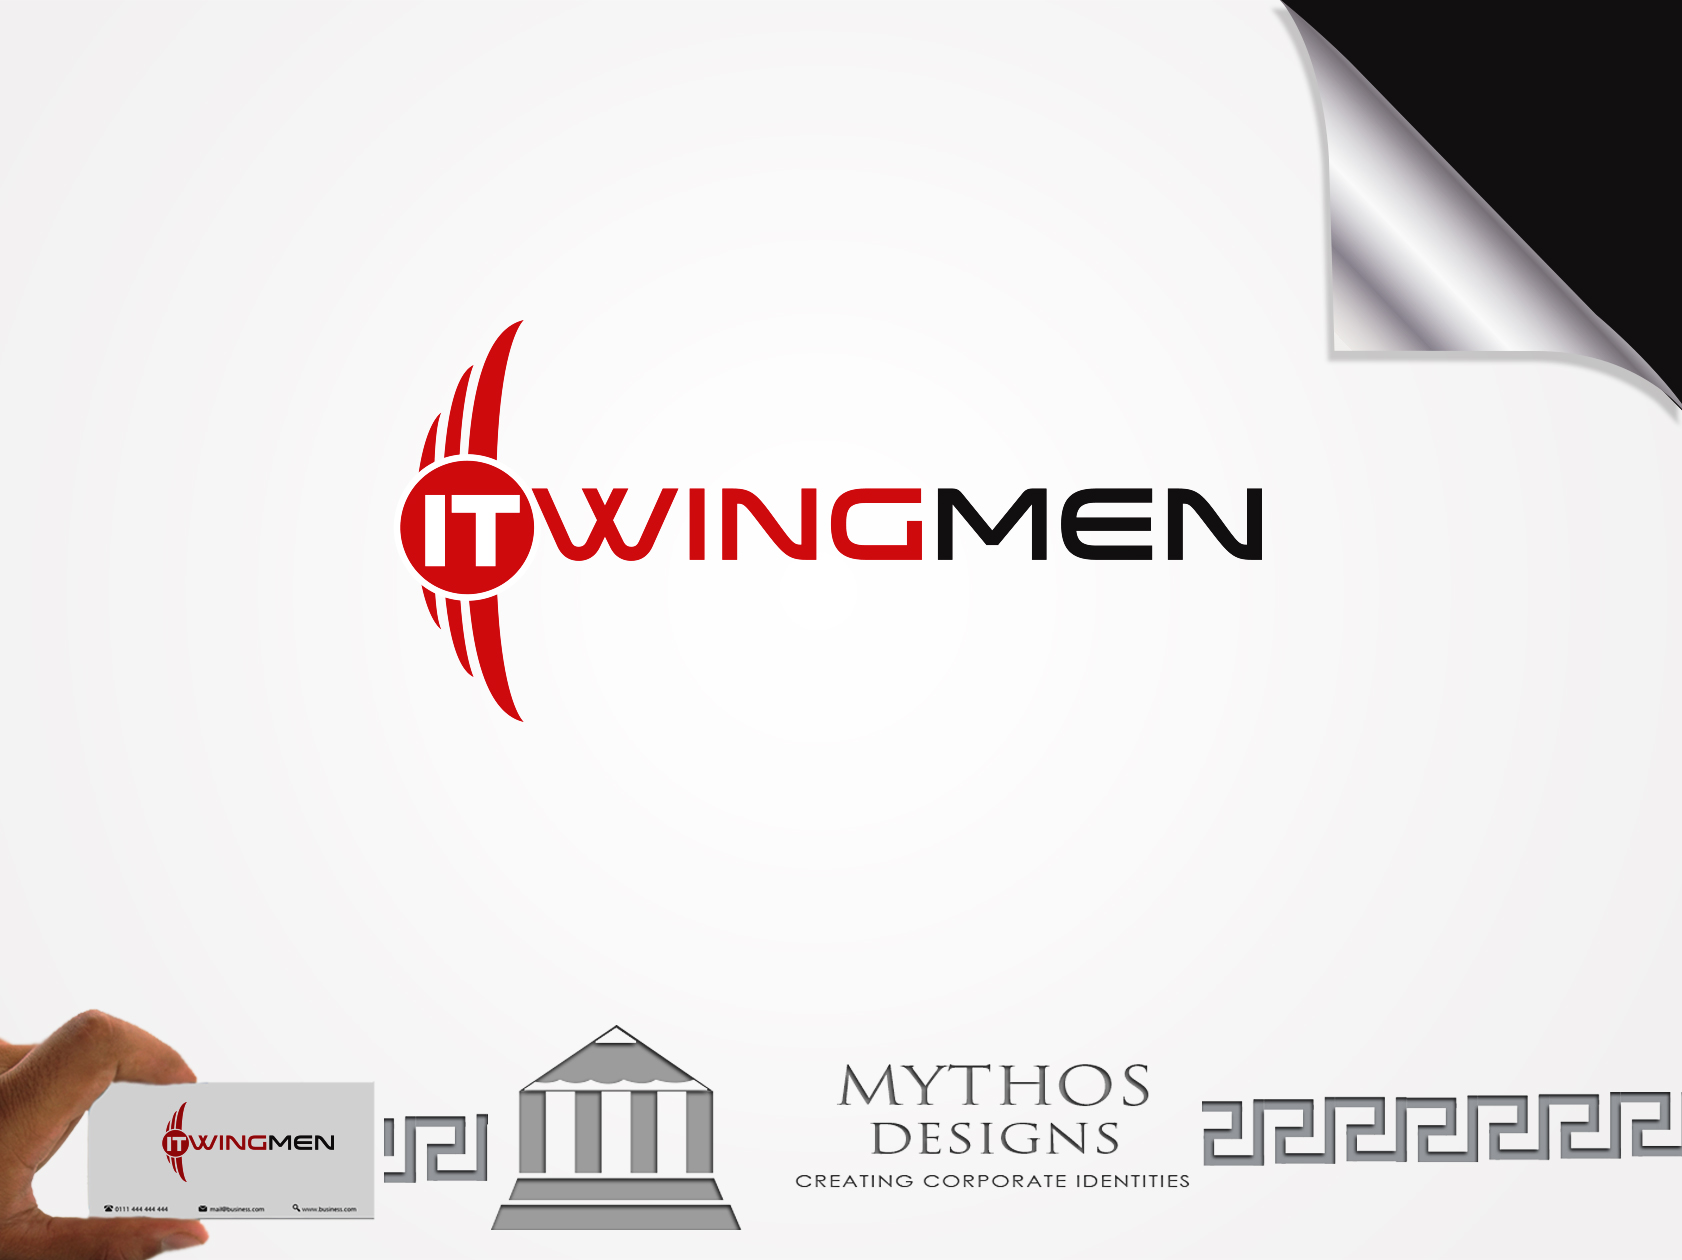 Logo Design by Mythos Designs - Entry No. 110 in the Logo Design Contest New Logo Design for IT Wingmen.